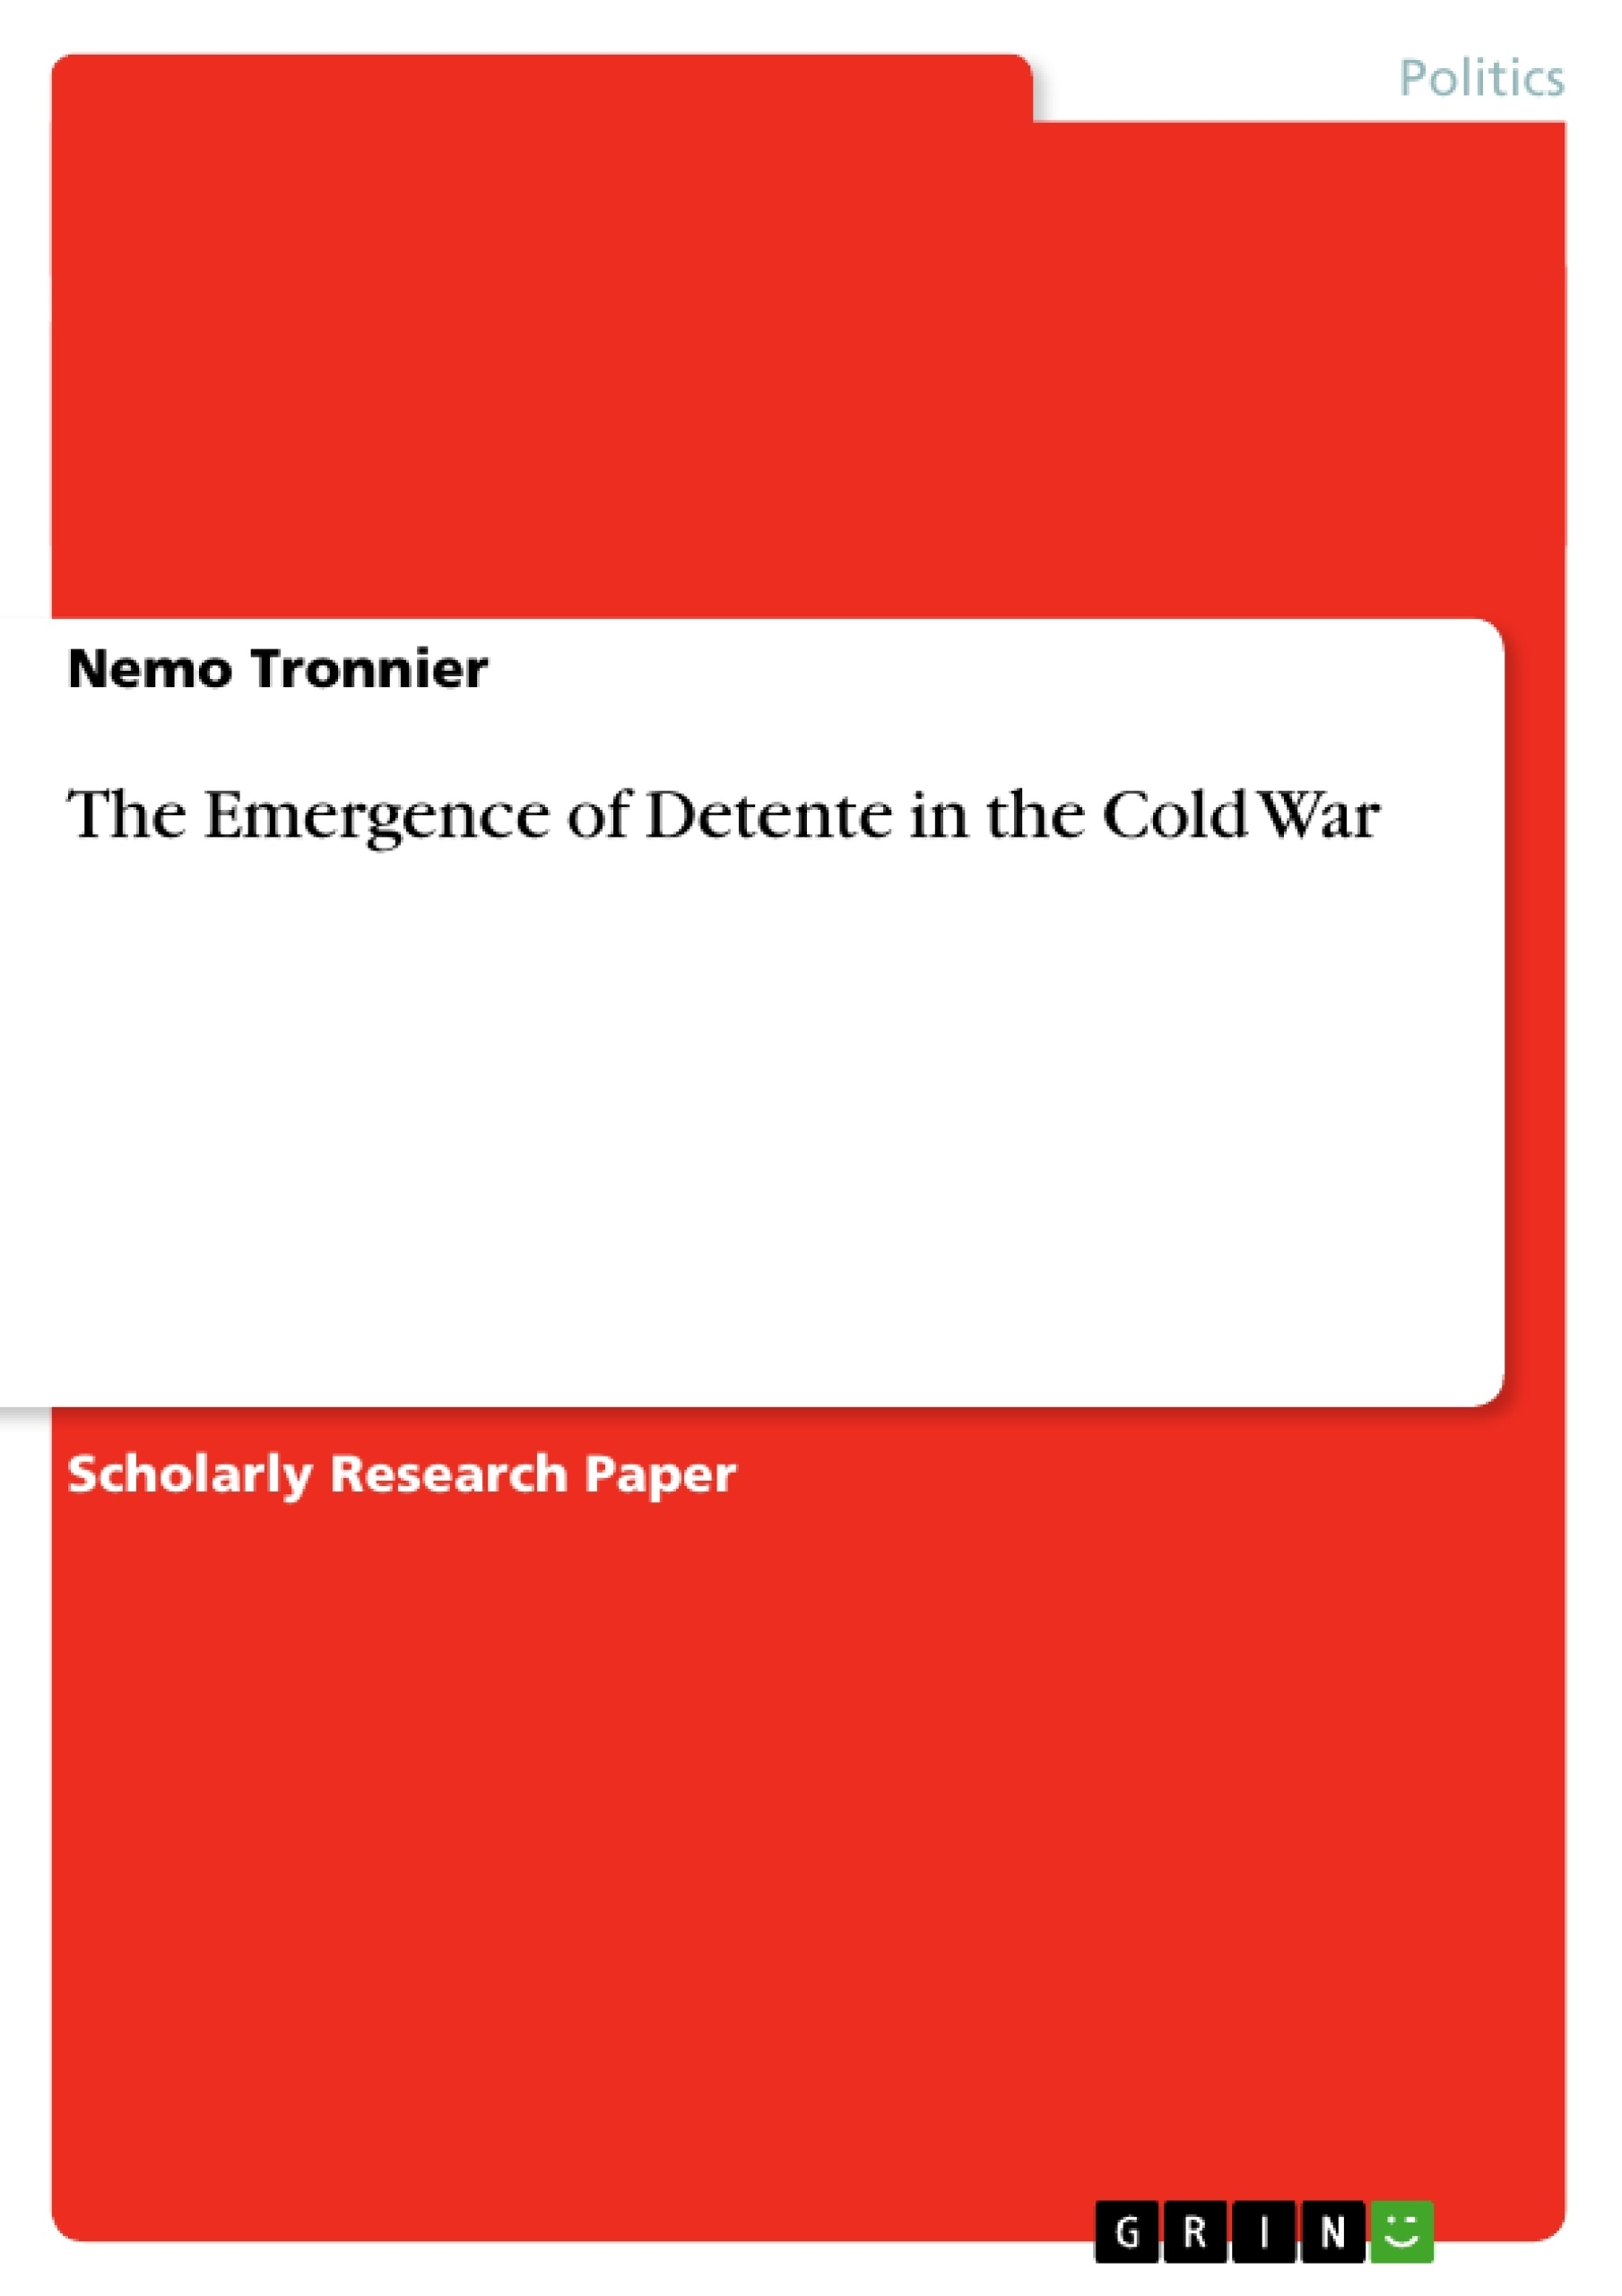 the emergence of detente in the cold war publish your master s the emergence of detente in the cold war publish your master s thesis bachelor s thesis essay or term paper